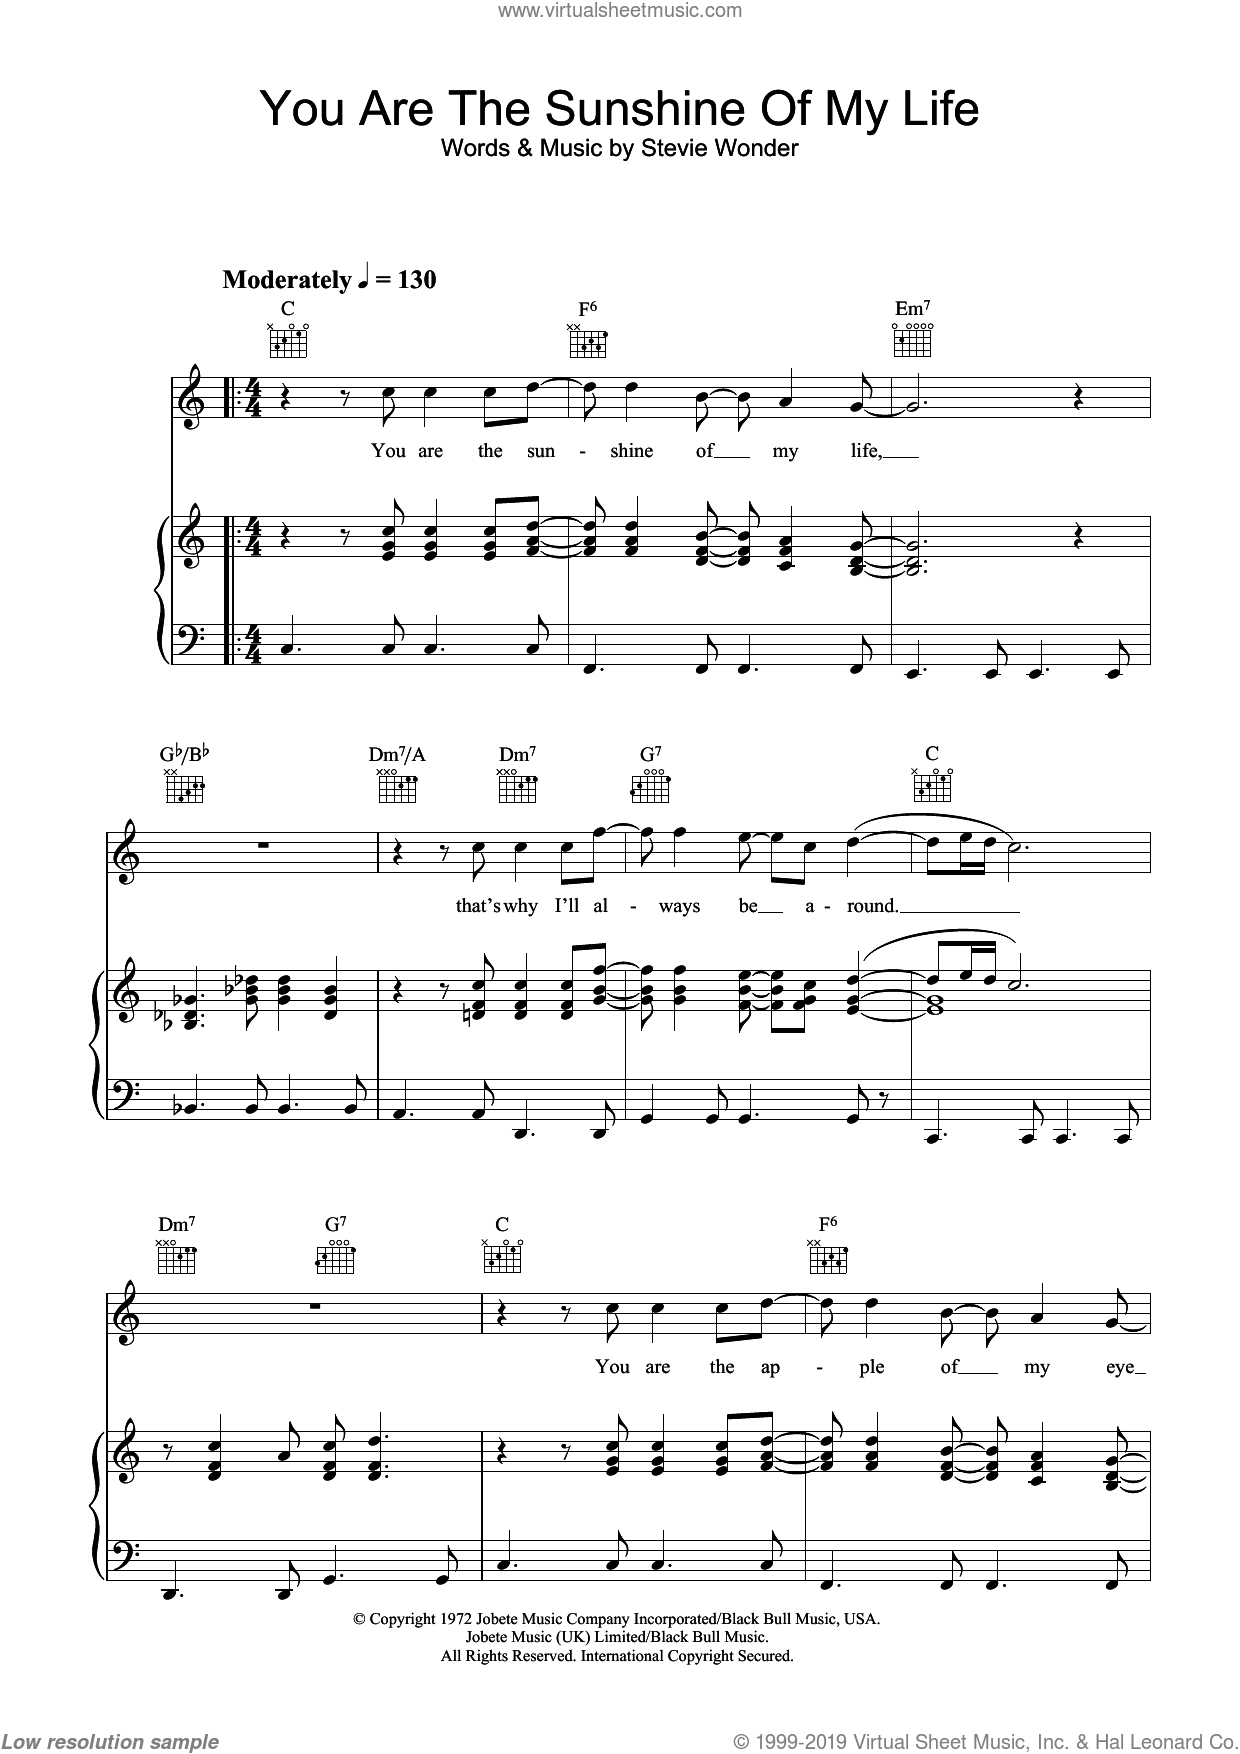 You Are The Sunshine Of My Life sheet music for voice, piano or guitar by Stevie Wonder. Score Image Preview.